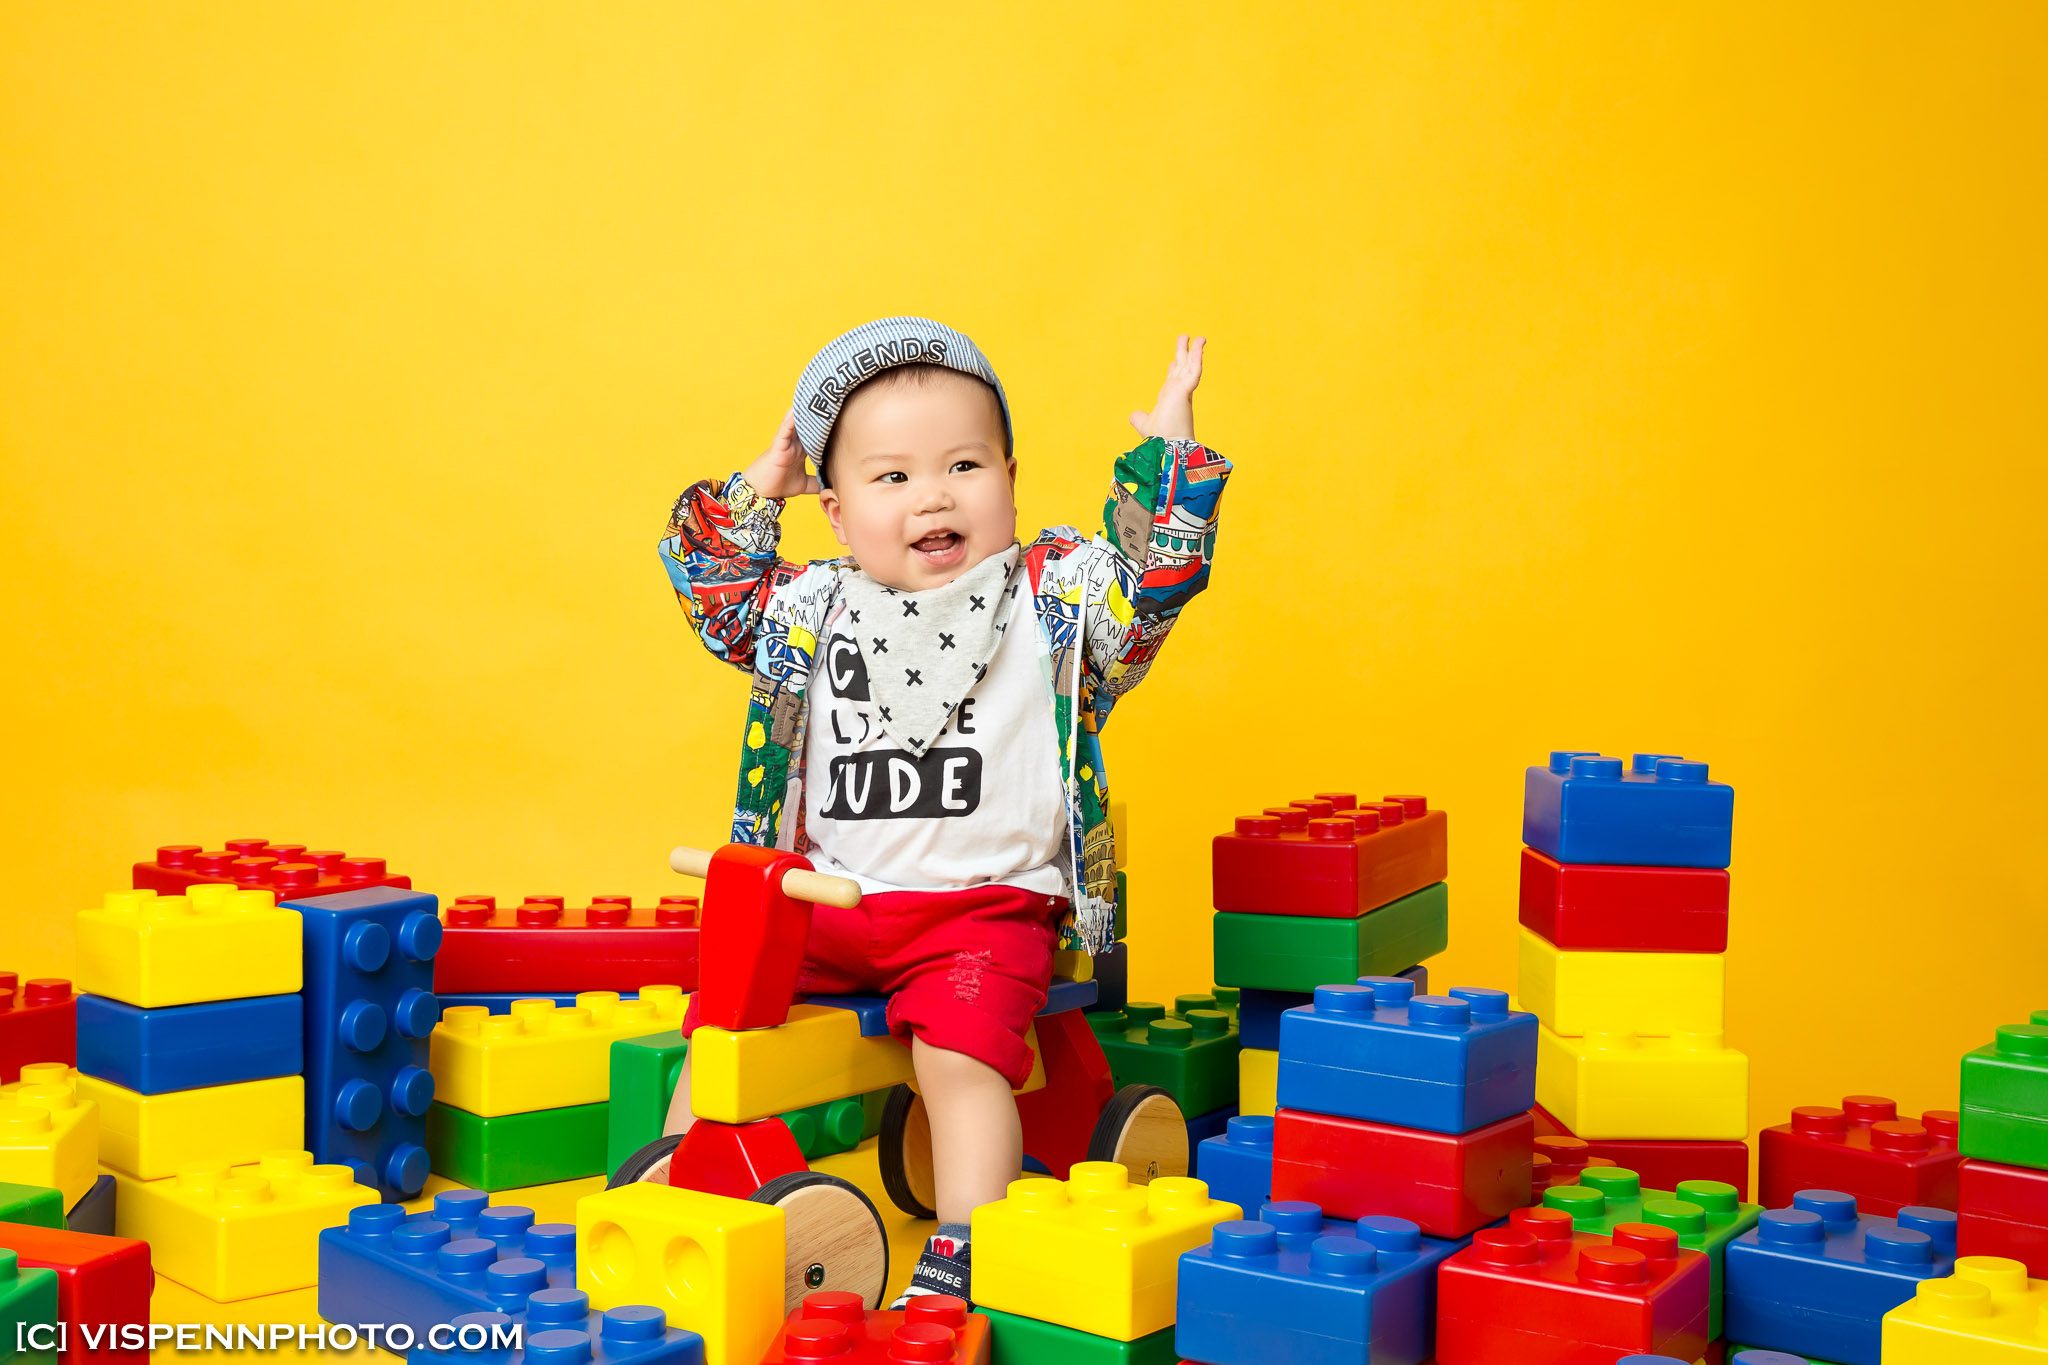 Melbourne Newborn Baby Family Photo BaoBao VISPENN 墨尔本 儿童 宝宝 百天照 满月照 孕妇照 全家福 KIDS YukiWU 3028 VISPENN